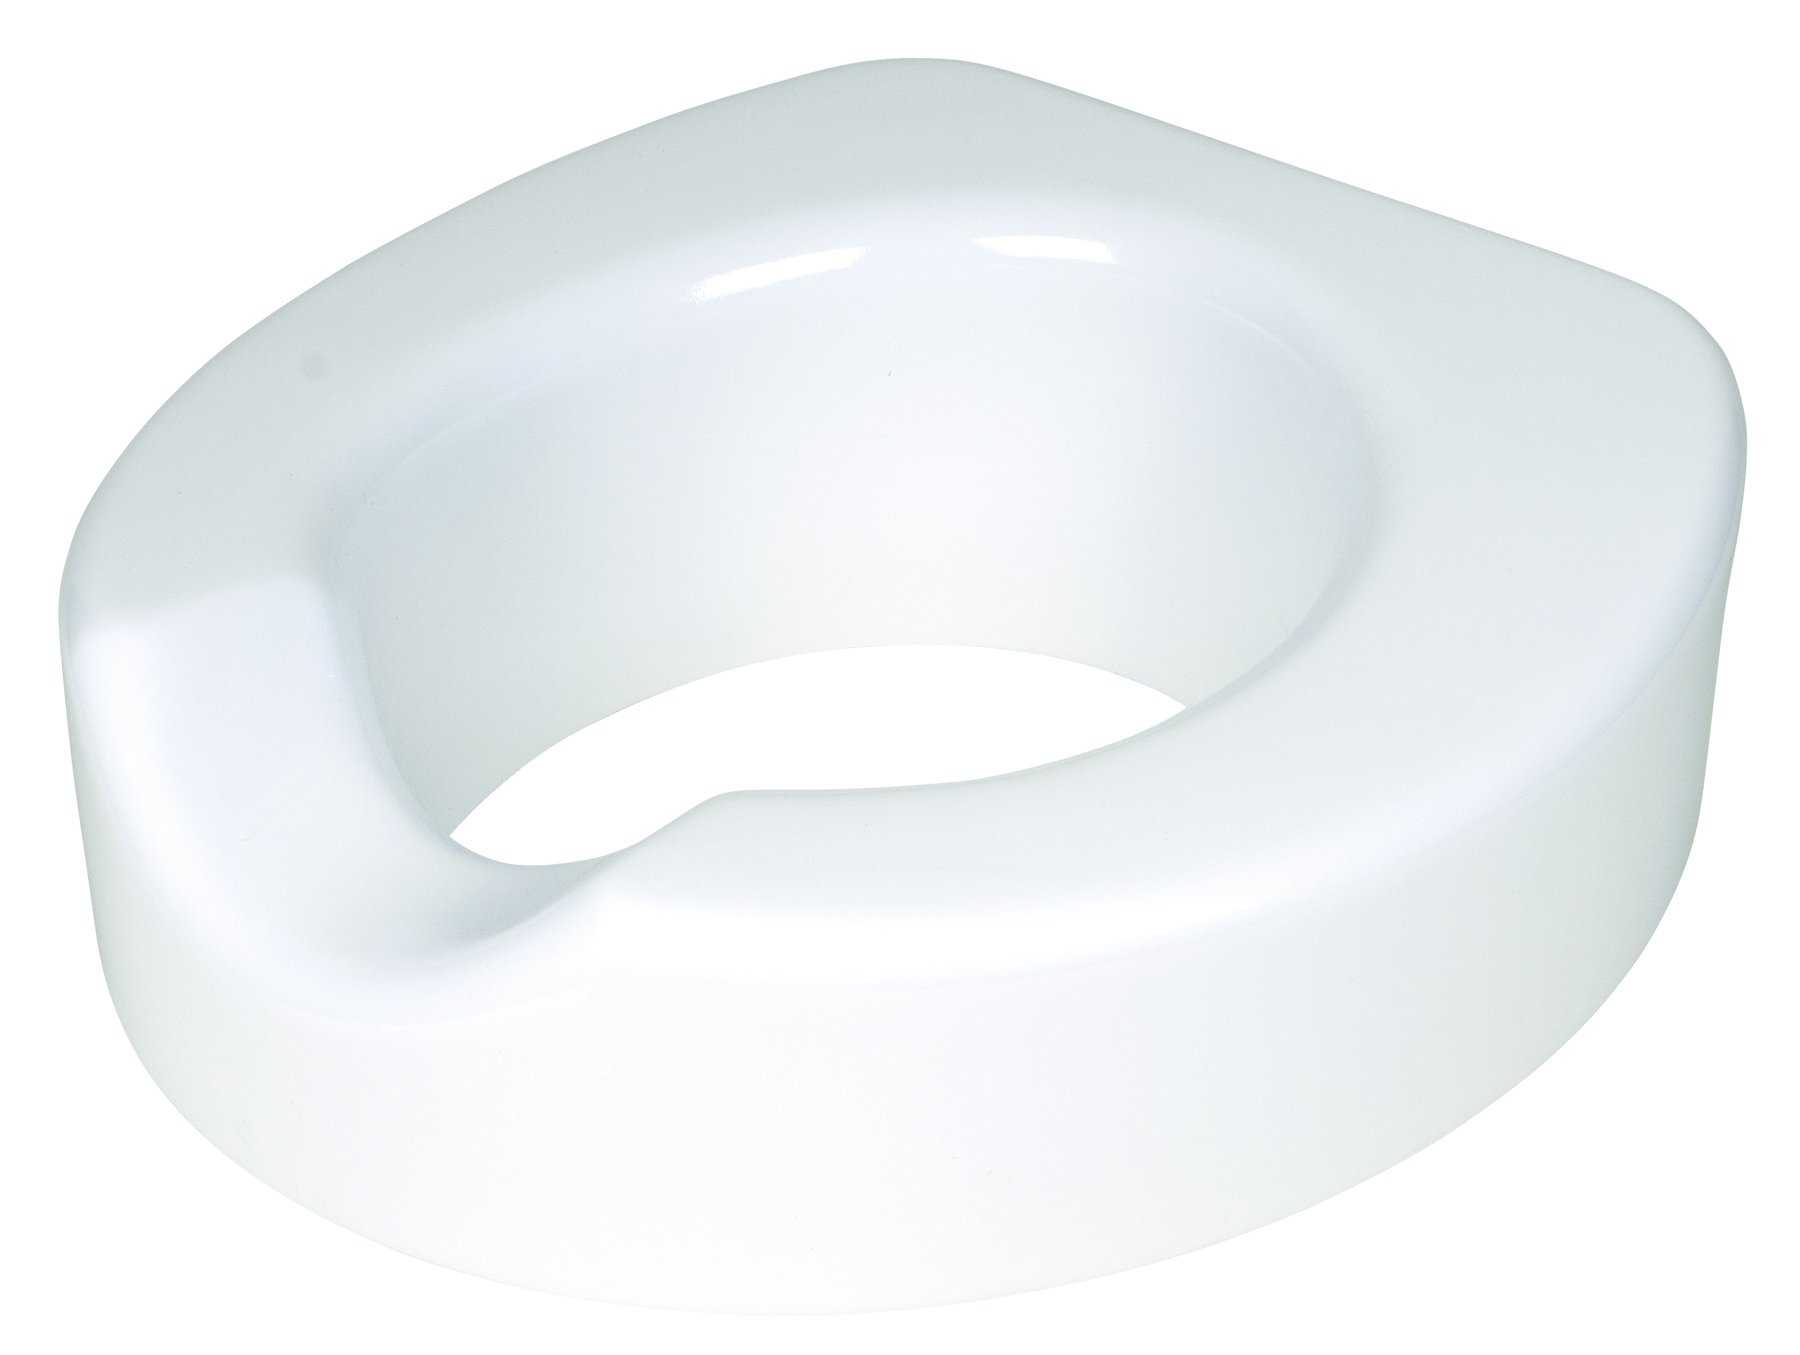 Carex Health Brands Fgb32000 4'' Quick-Lock Raised Toilet Seat